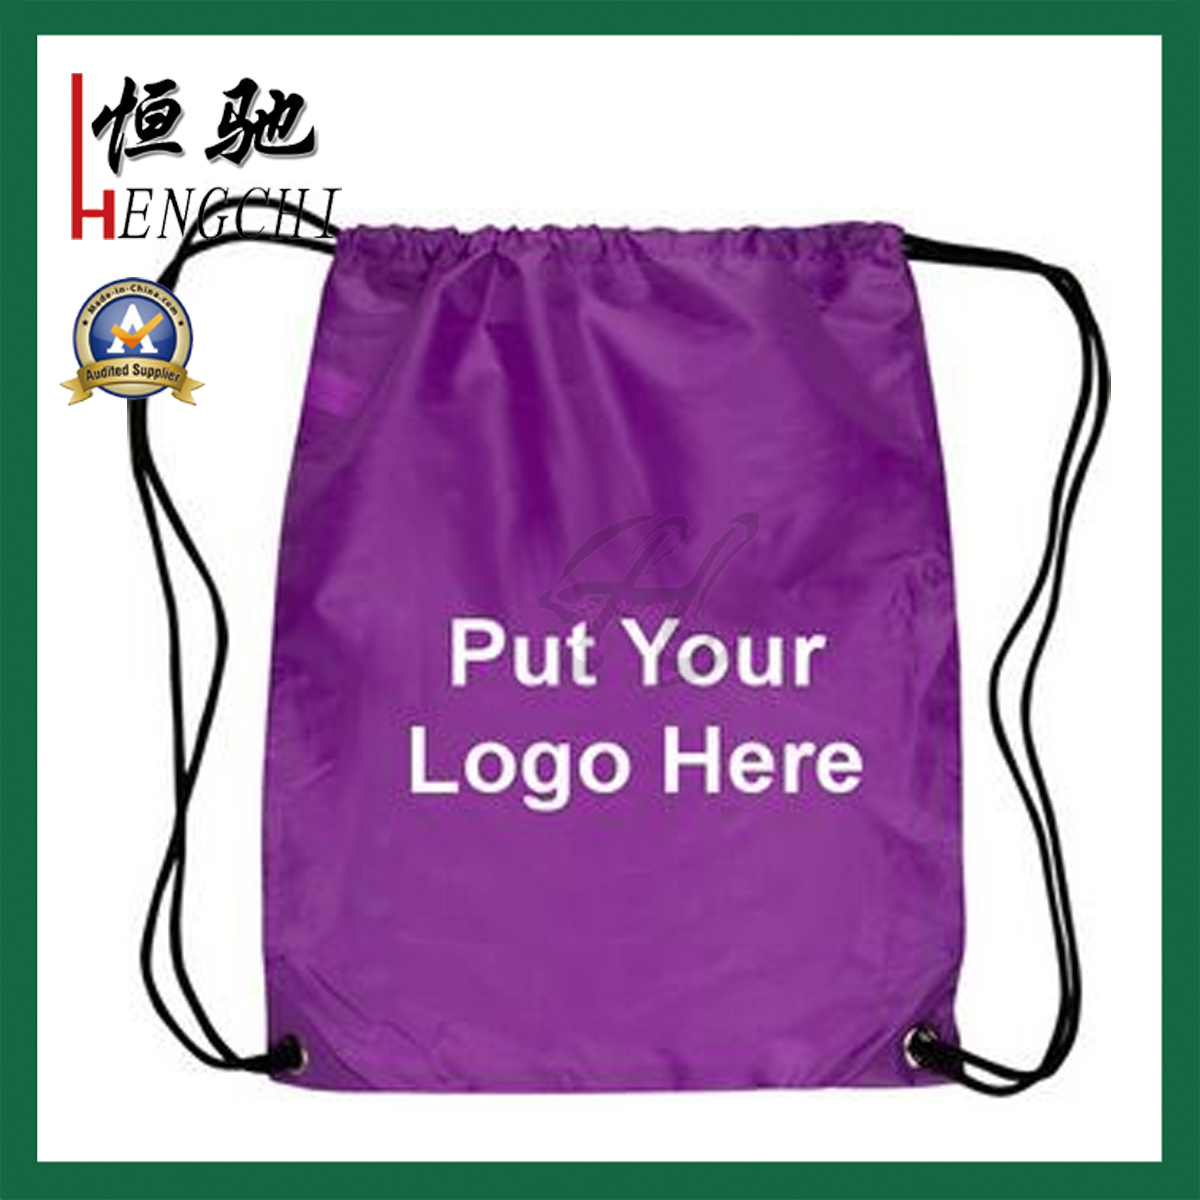 Cotton Drawstring Clothes Packing Bag for Laundry Room